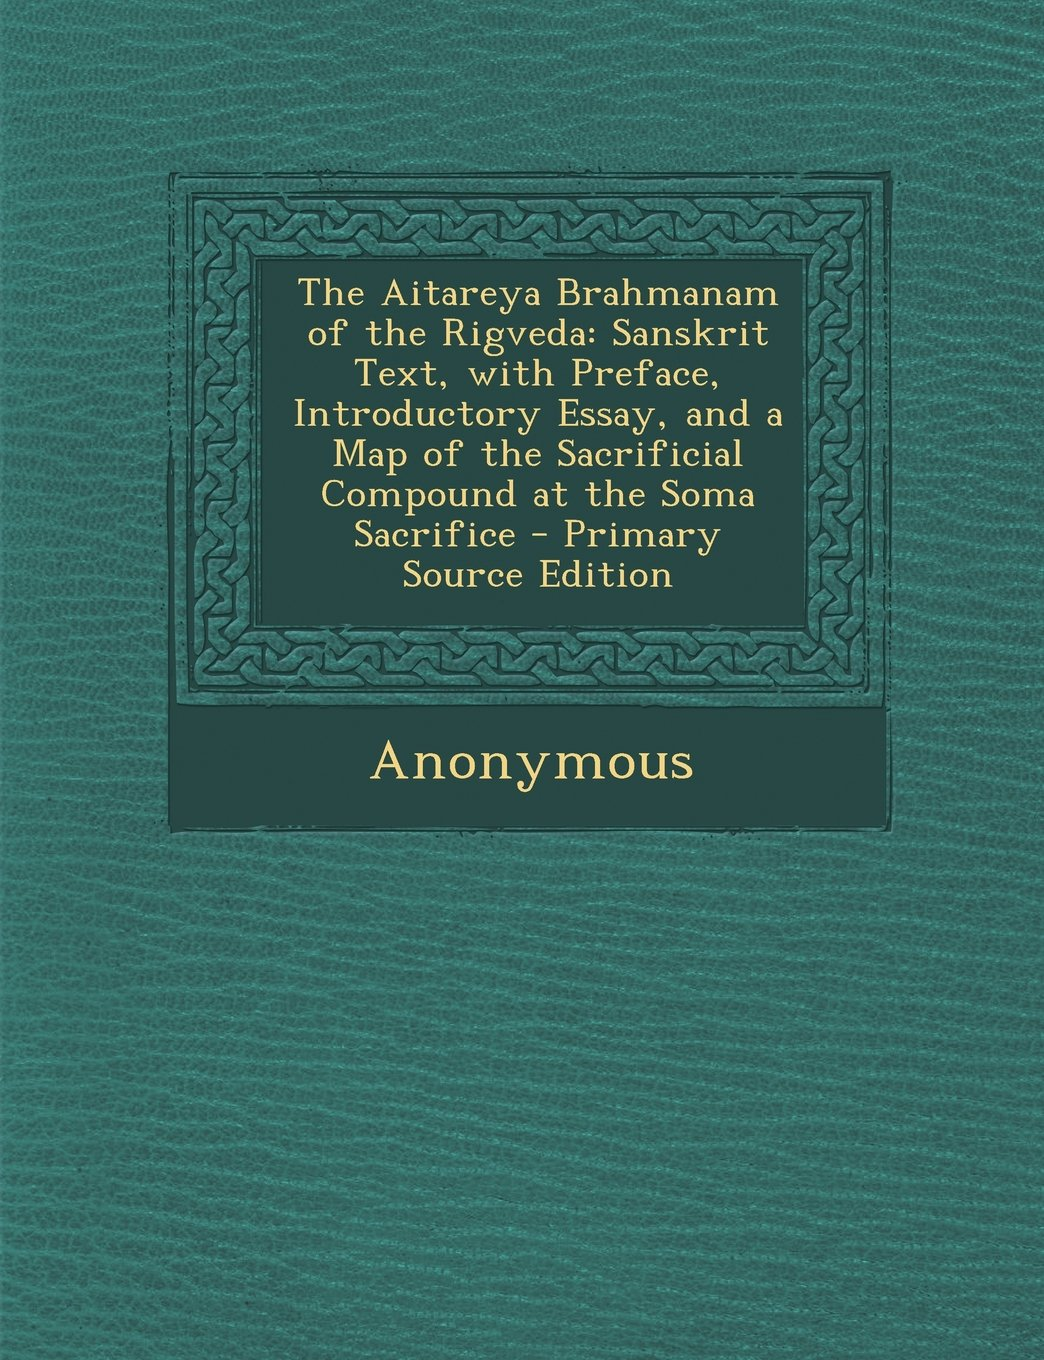 The Aitareya Brahmanam of the Rigveda: Sanskrit Text, with Preface, Introductory Essay, and a Map of the Sacrificial Compound at the Soma Sacrifice - Primary Source Edition ebook